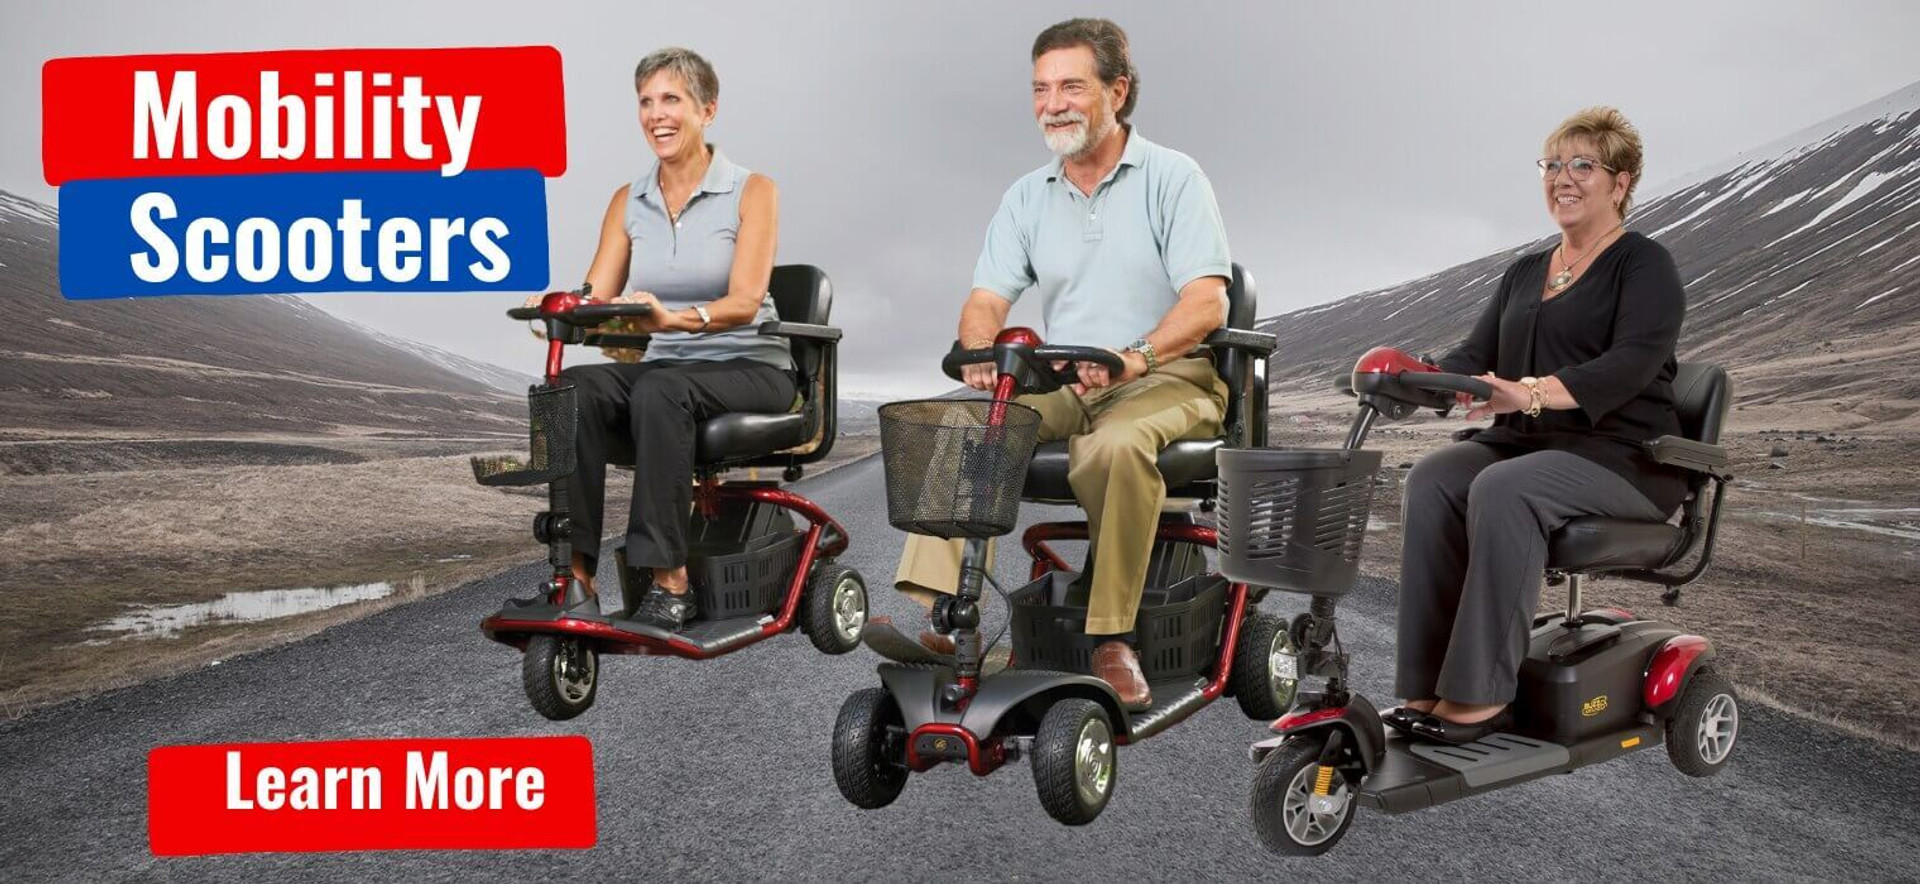 All Star Medical Mobility Scooters